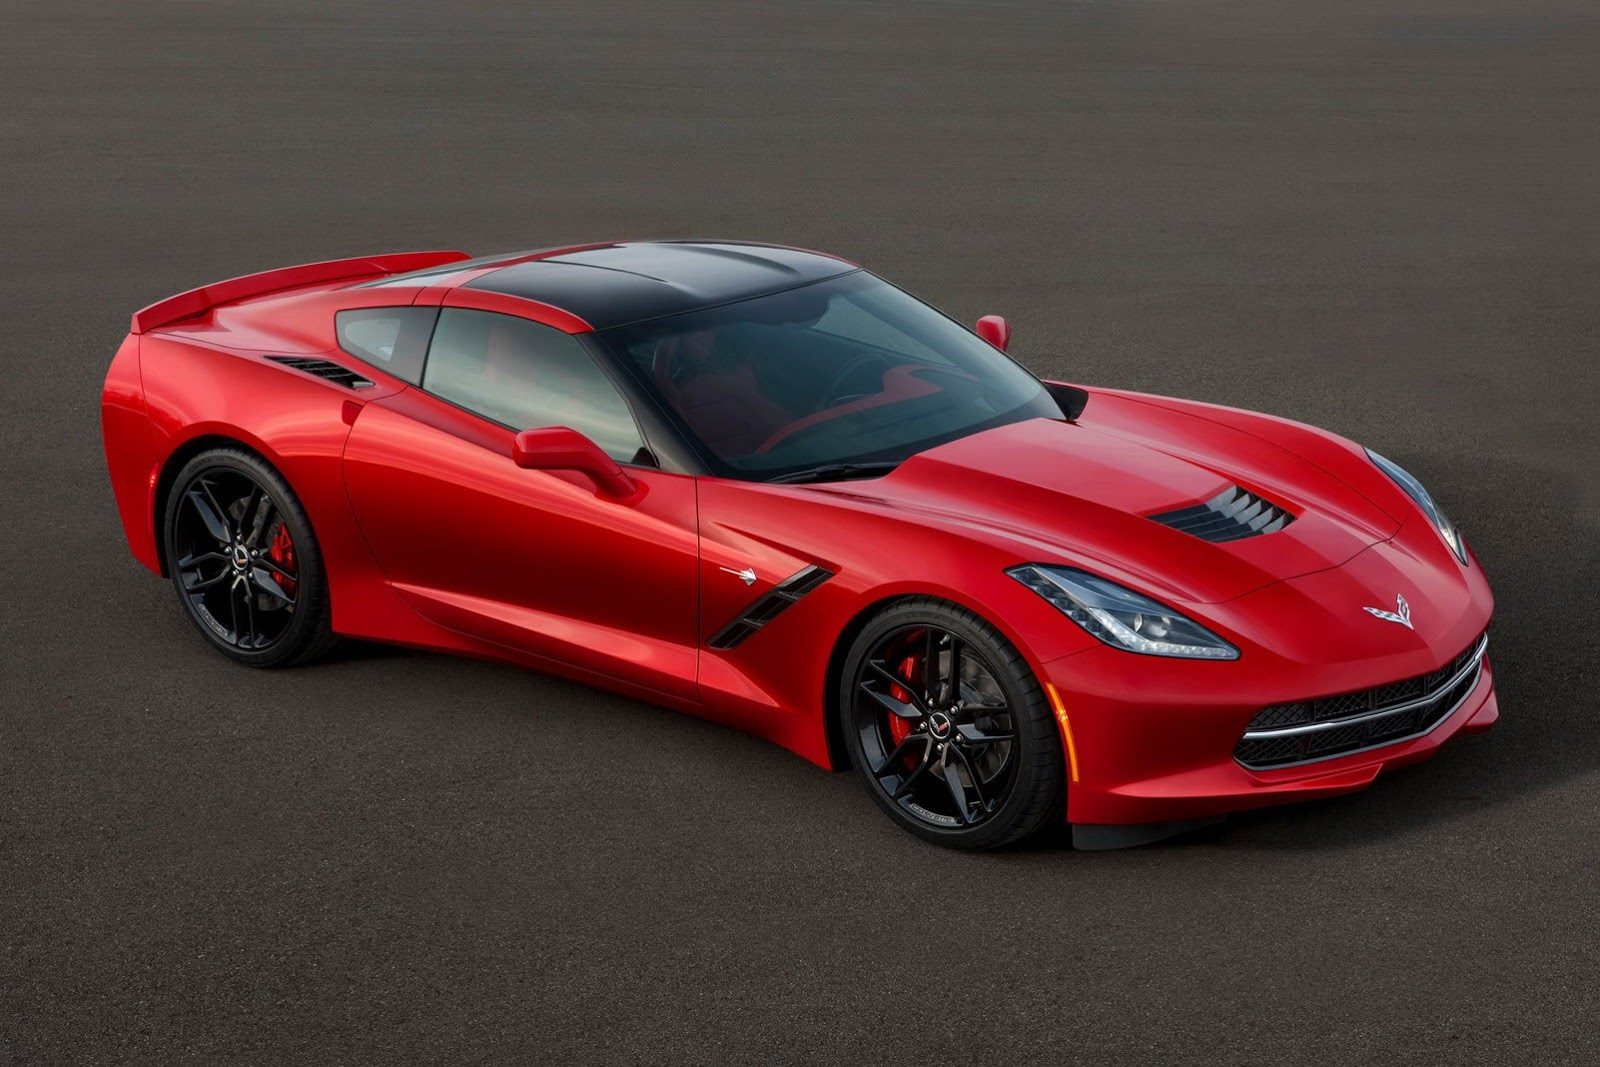 2014 corvette Stingray Wallpaper 19